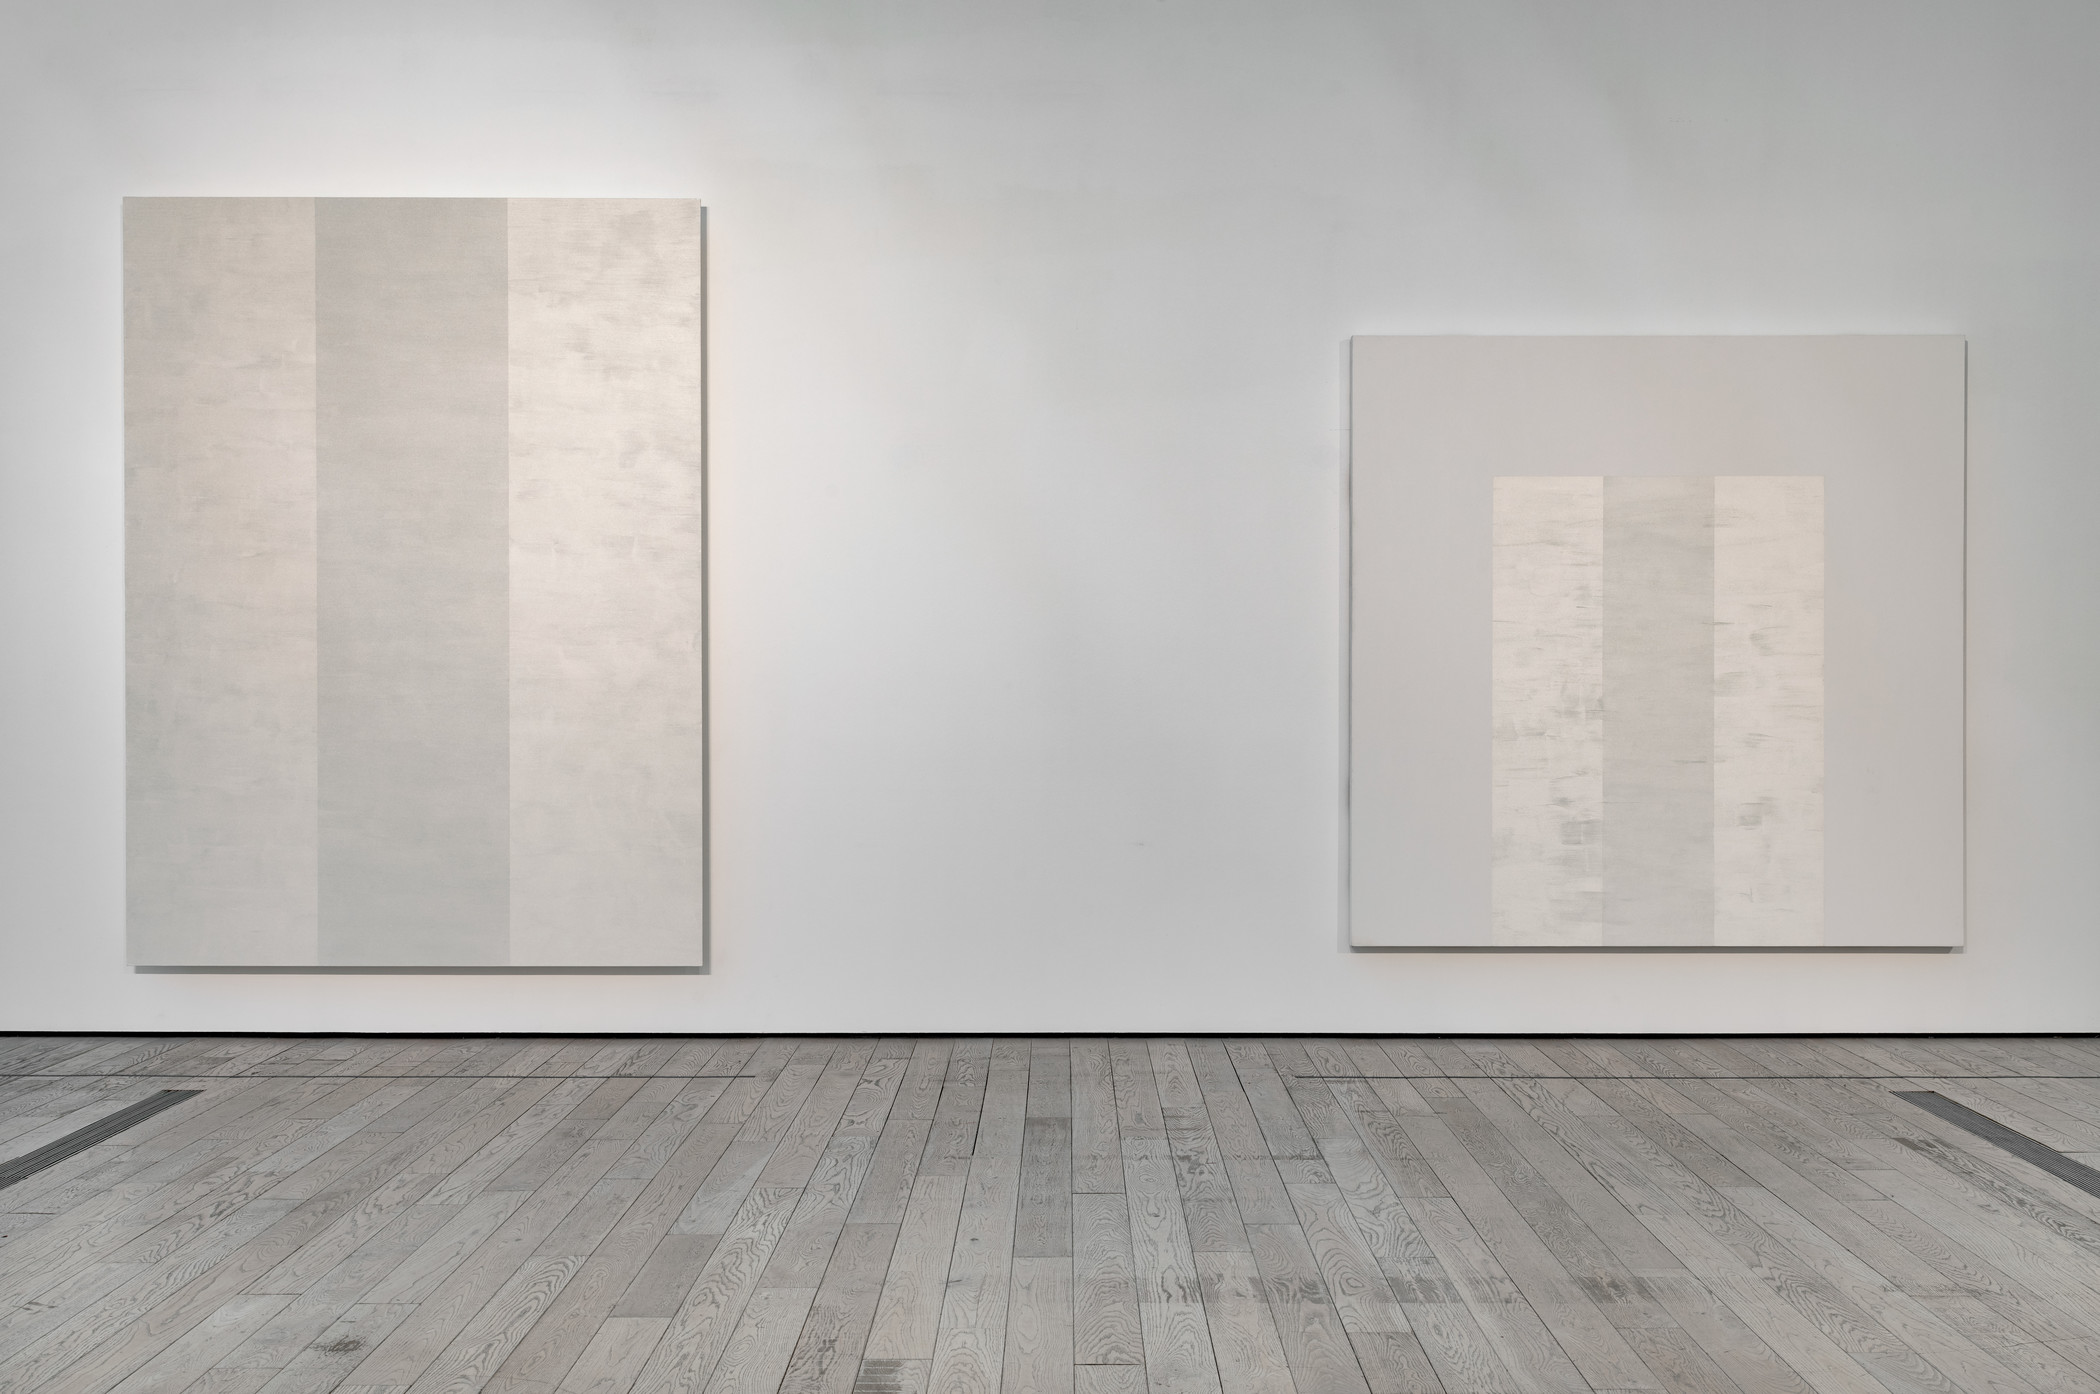 Installation photograph, Mary Corse: A Survey in Light, Los Angeles County Museum of Art, July 28–November 11, 2019, art © Mary Corse, photo © Museum Associates/LACMA. From left: Untitled (White Inner Band, Beveled), 2011, Collection of Kayne Griffin Corcoran; Untitled (White Arch Inner Band Series), 1996, Los Angeles County Museum of Art; Modern and Contemporary Art Council, New Talent Purchase award by exchange